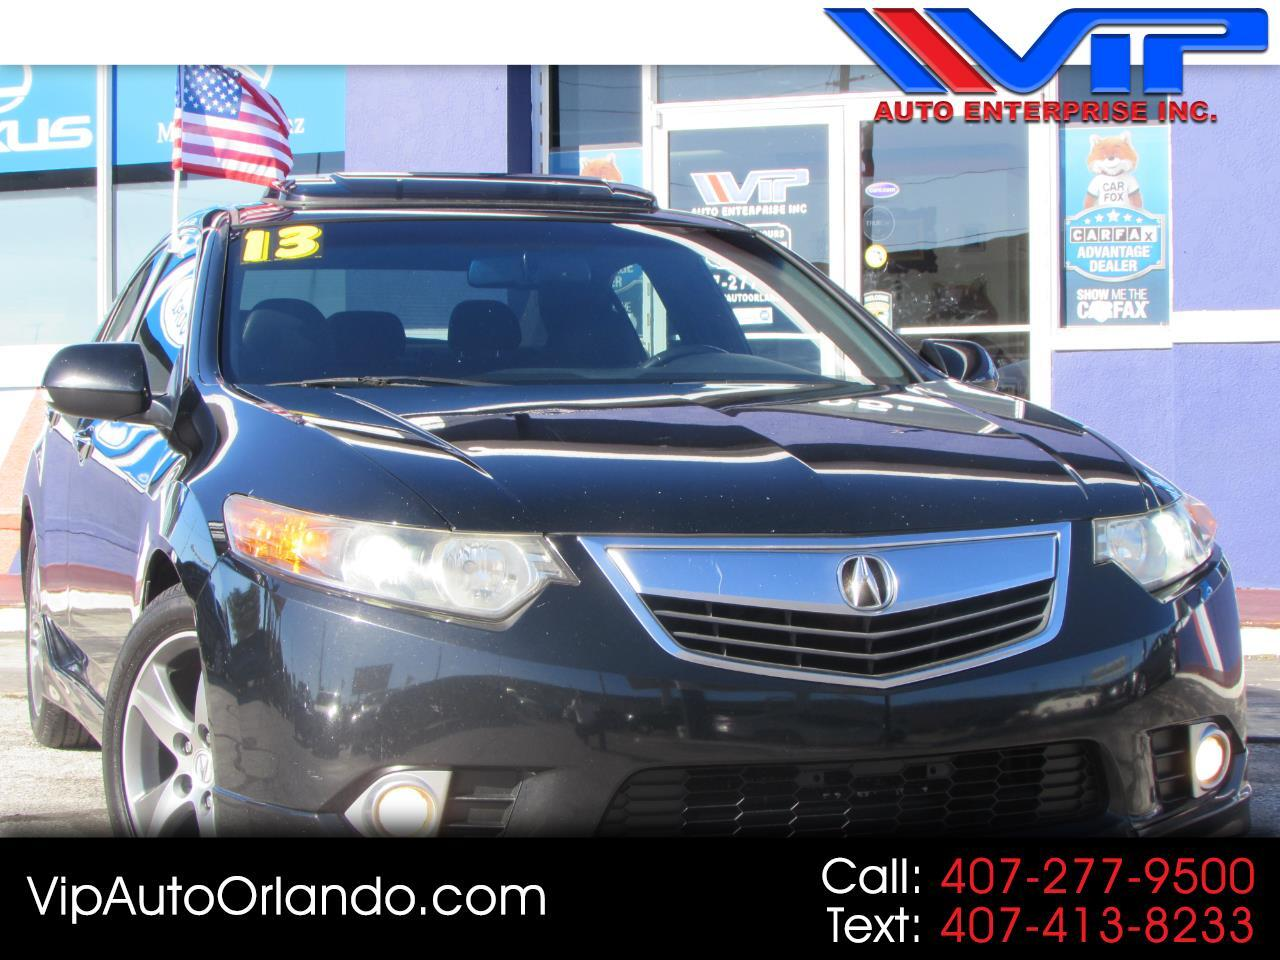 2013 Acura TSX 4dr Sdn I4 Man Special Edition